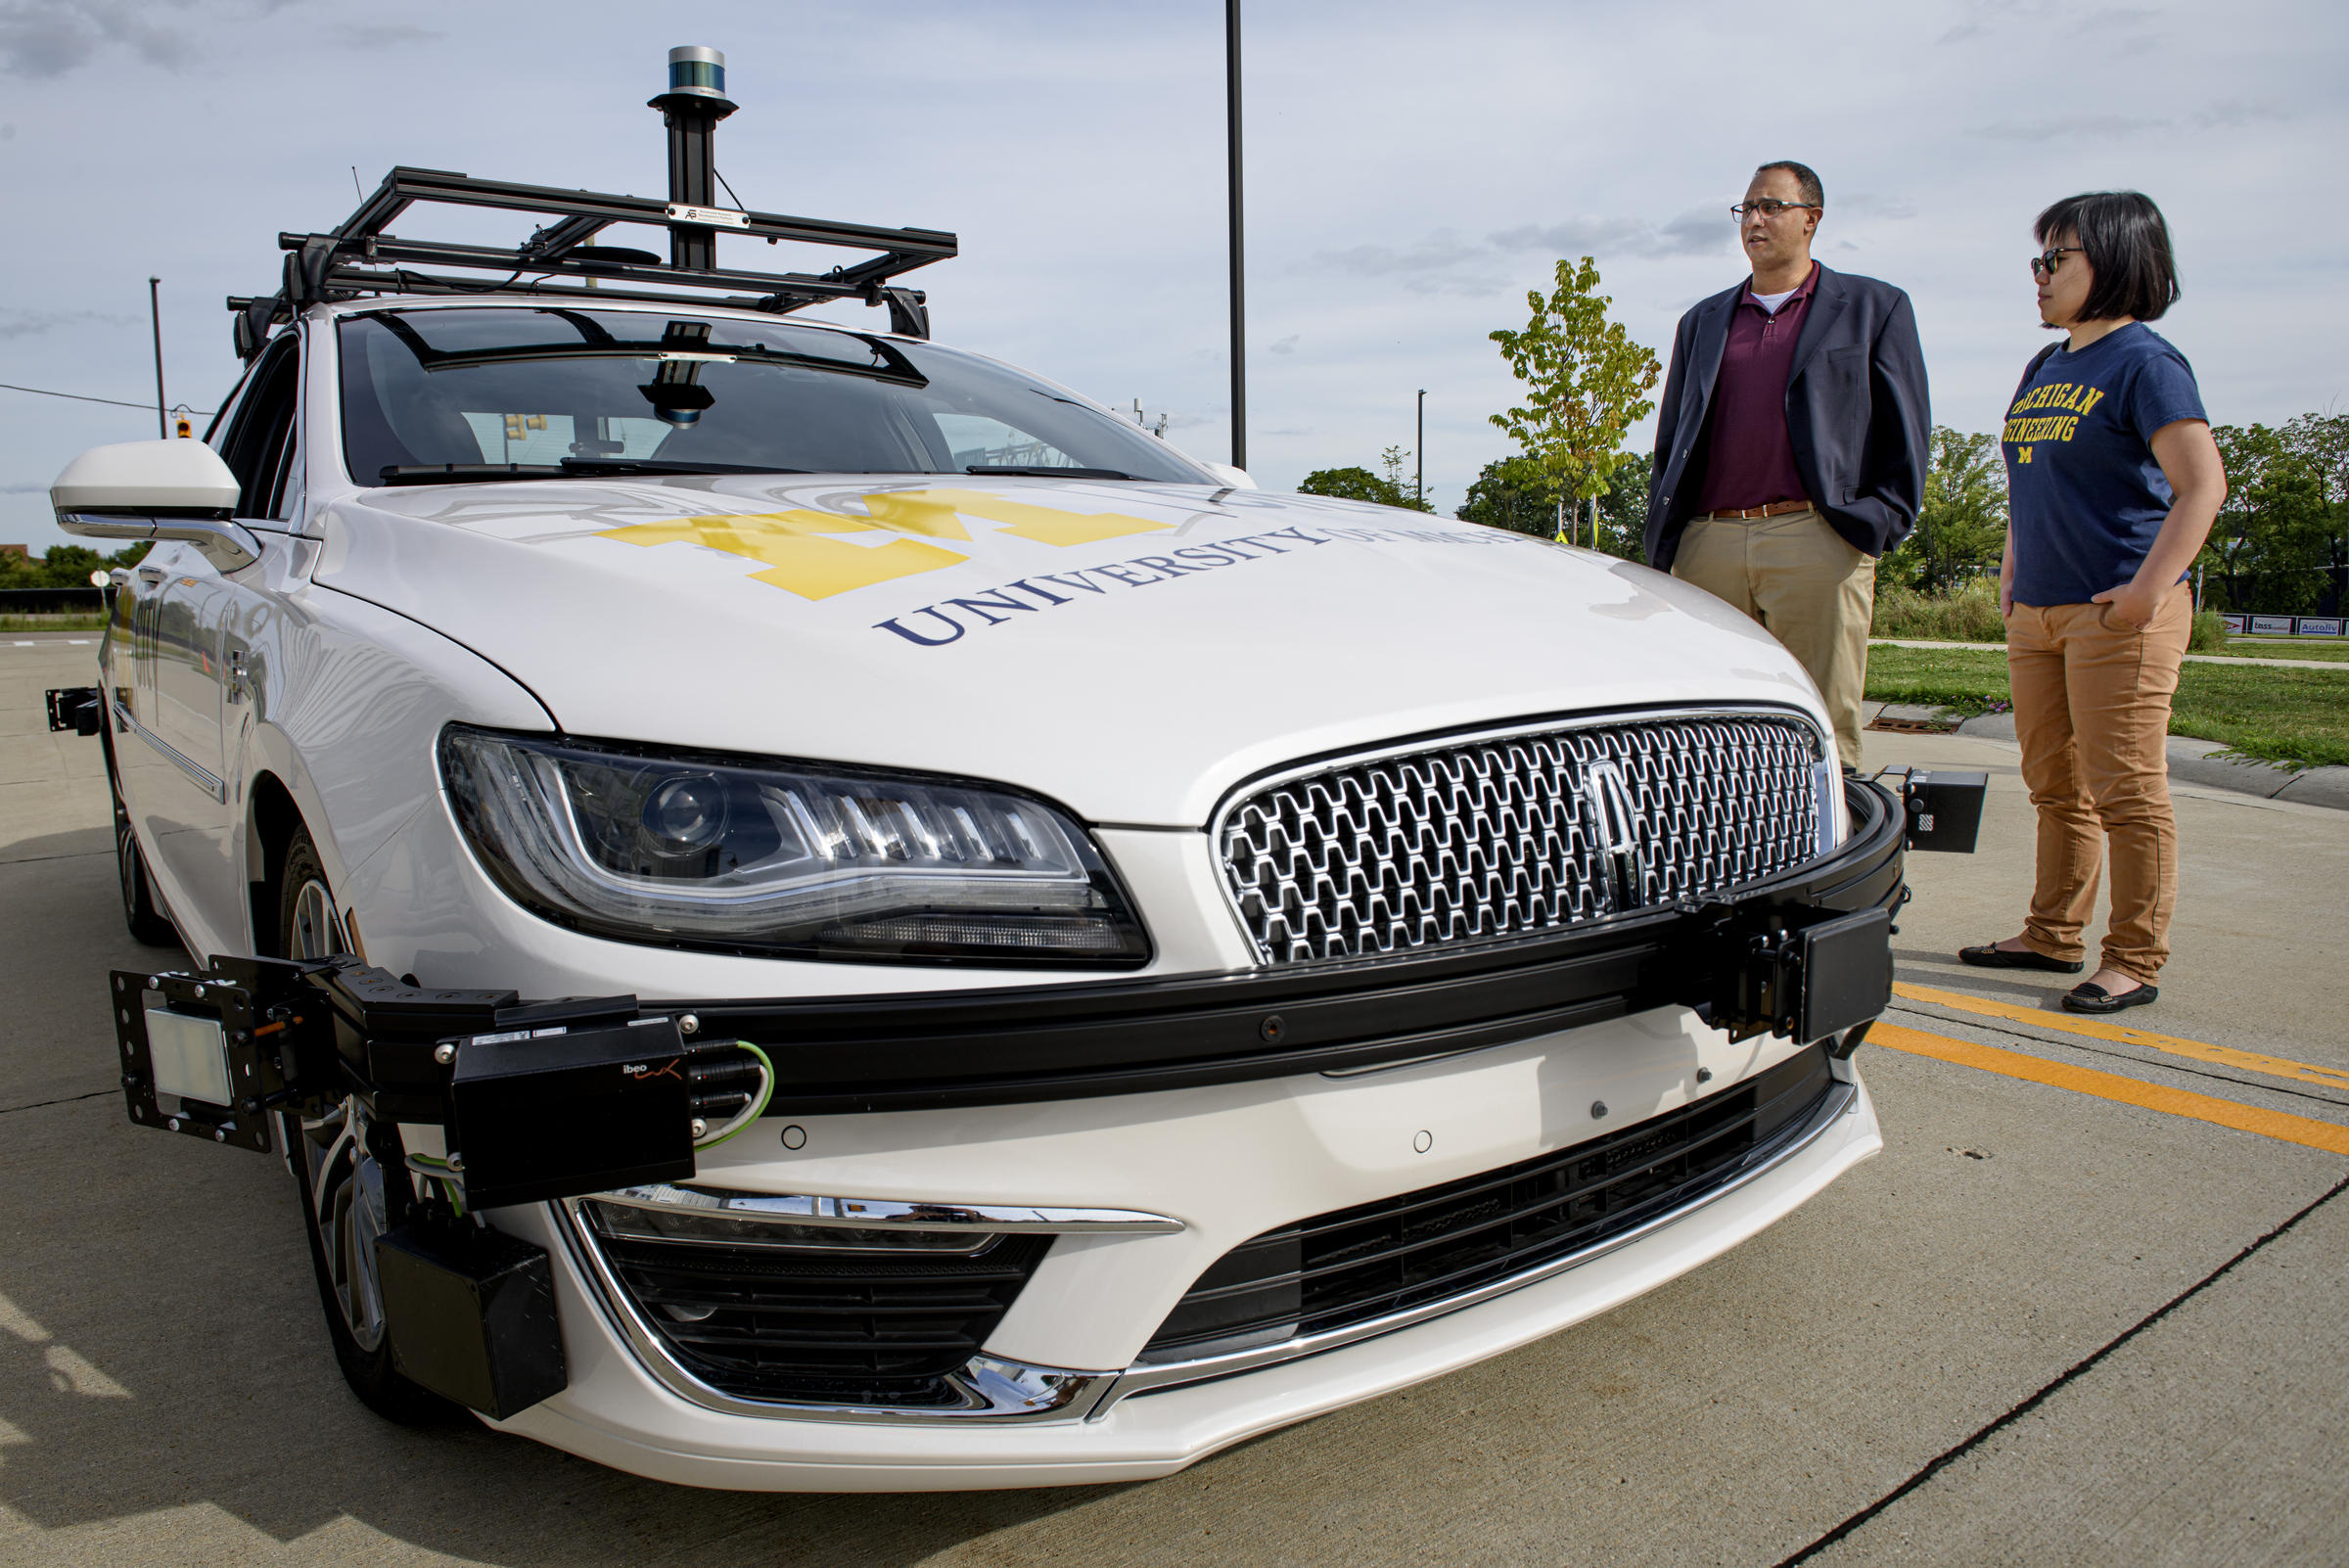 Researchers Driverless Cars Can T Just Be Safe They Also Need To Be Nice Michigan Radio